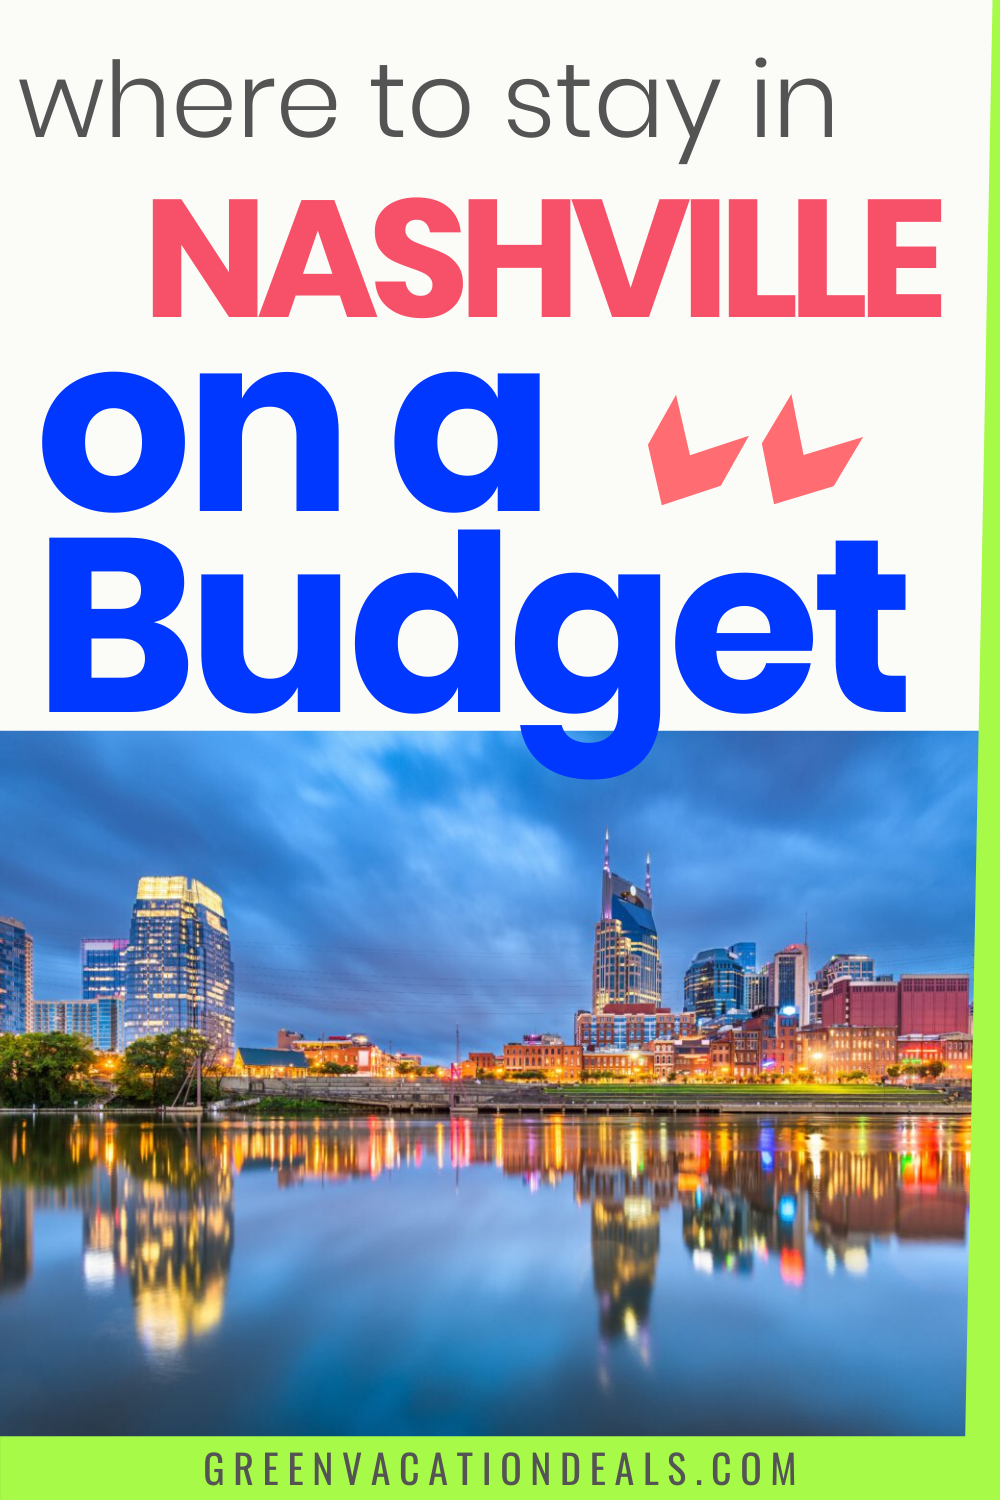 Nashville, Tennessee is a city with so many things to do for singles, couples or families – but what to do when you're on a budget? Do you just book the cheapest Nashville hotel available? What if you don't want to sacrifice quality for price? We found the 15 best affordable Nashville hotels with great customer reviews #budgettravel #budgettraveler #cheaptravel #budgetvacation #Nashville #Tennessee #travelcheap #traveltips #traveladvice #MusicCity #VisitMusicCity #budgetfamilytravel #budgettrip